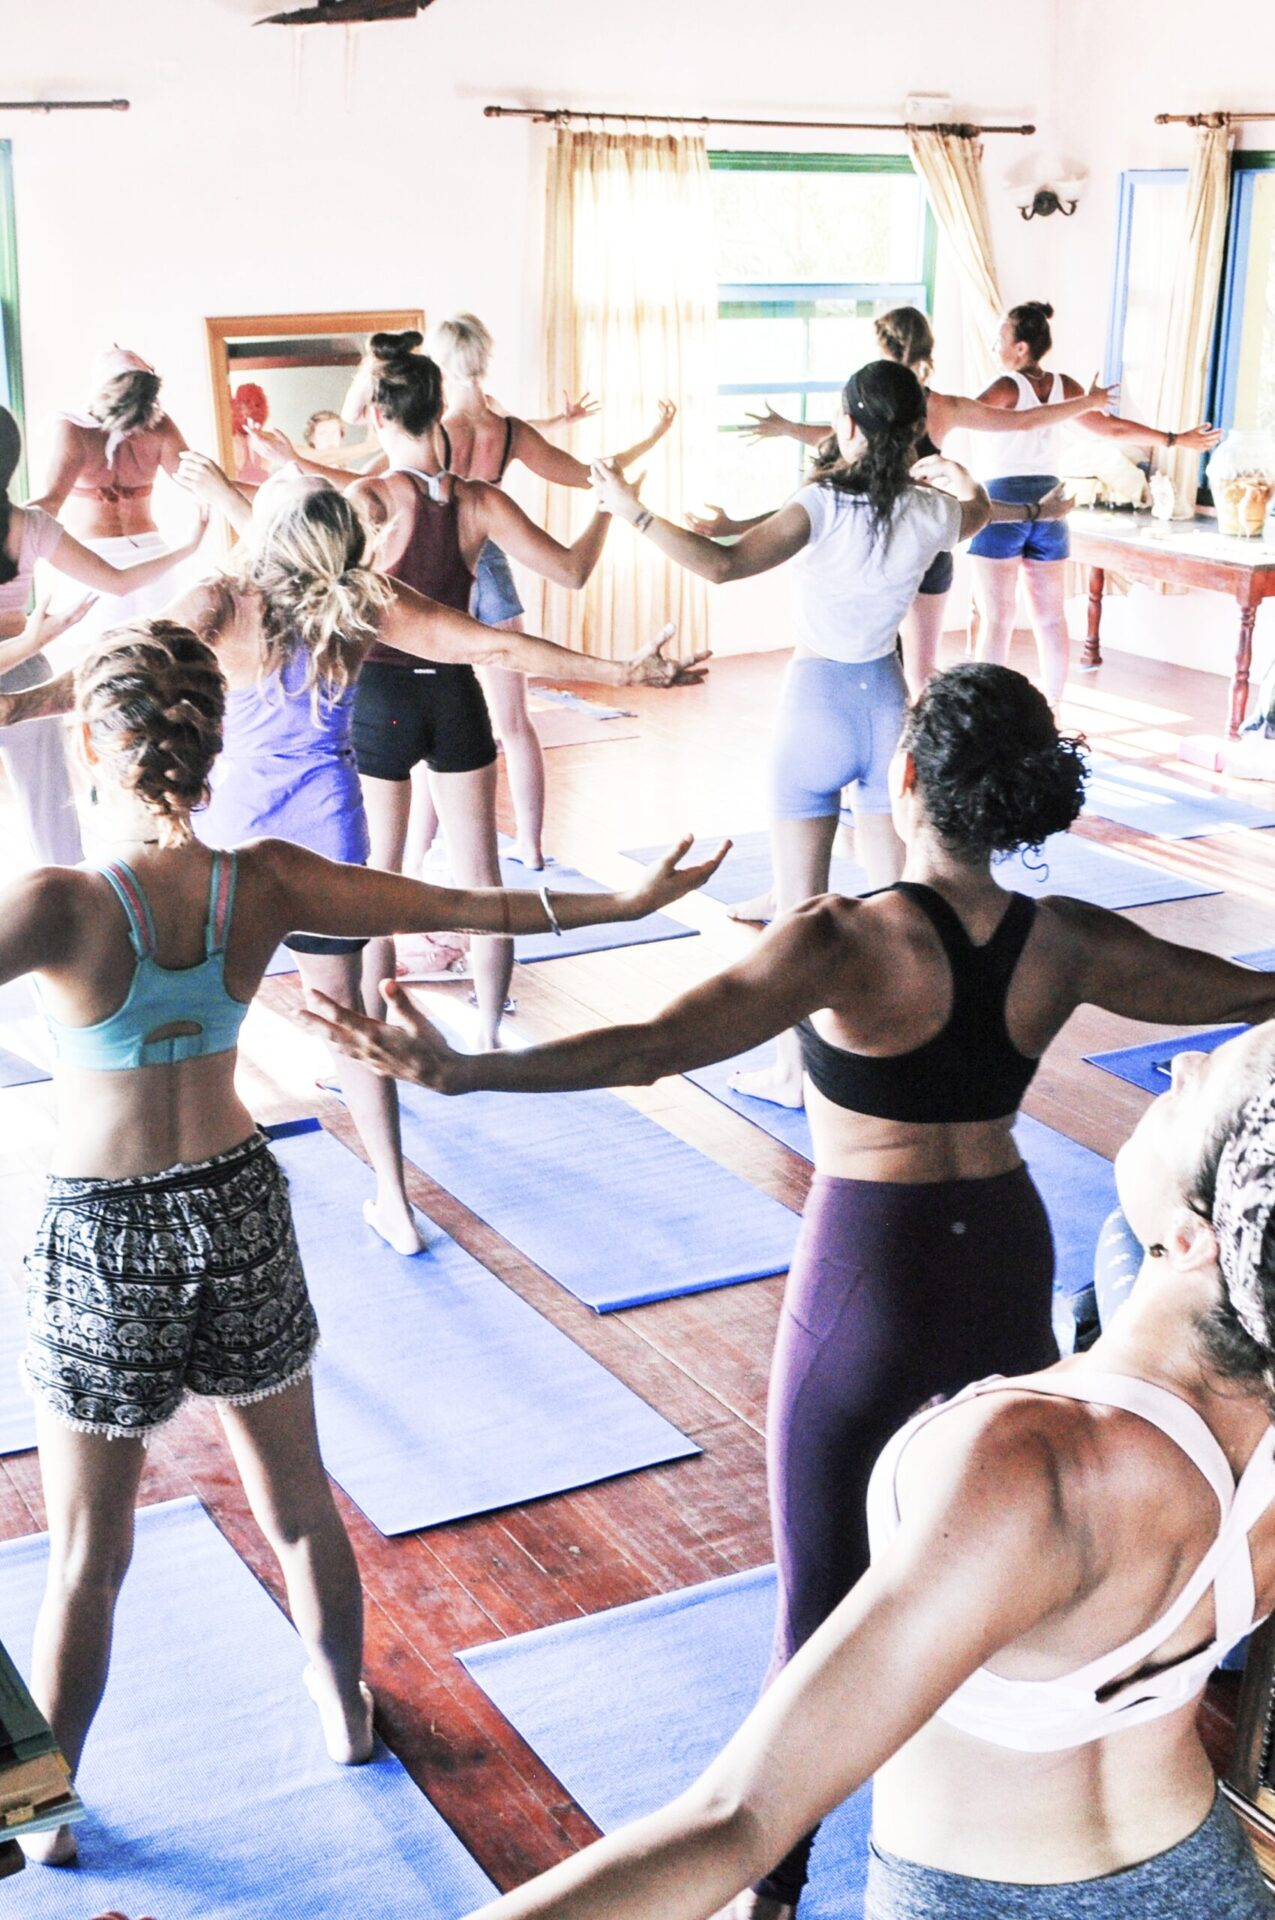 REFRESH ORGANIC YOGA RETREAT | BIOPOROS, CORFU (AUG 2020)